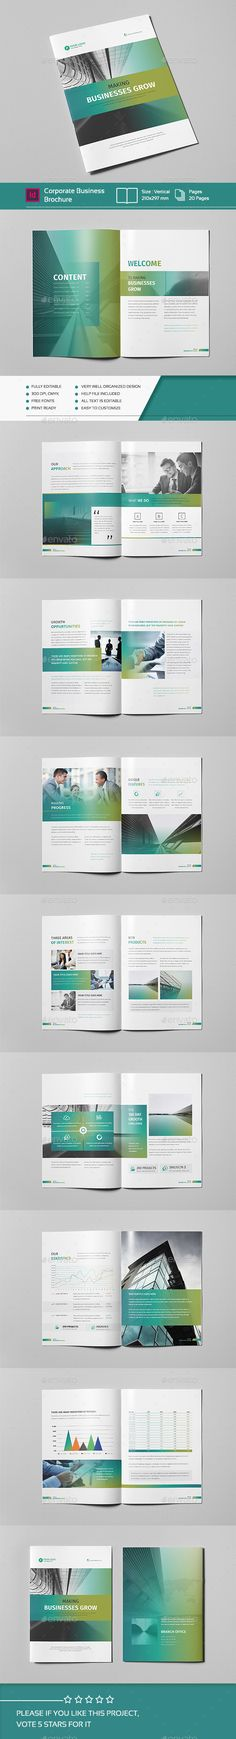 Corporate Business Brochure 20 Pages A4 Template InDesign INDD #design Download: http://graphicriver.net/item/corporate-business-brochure-20-vol02/14174521?ref=ksioks